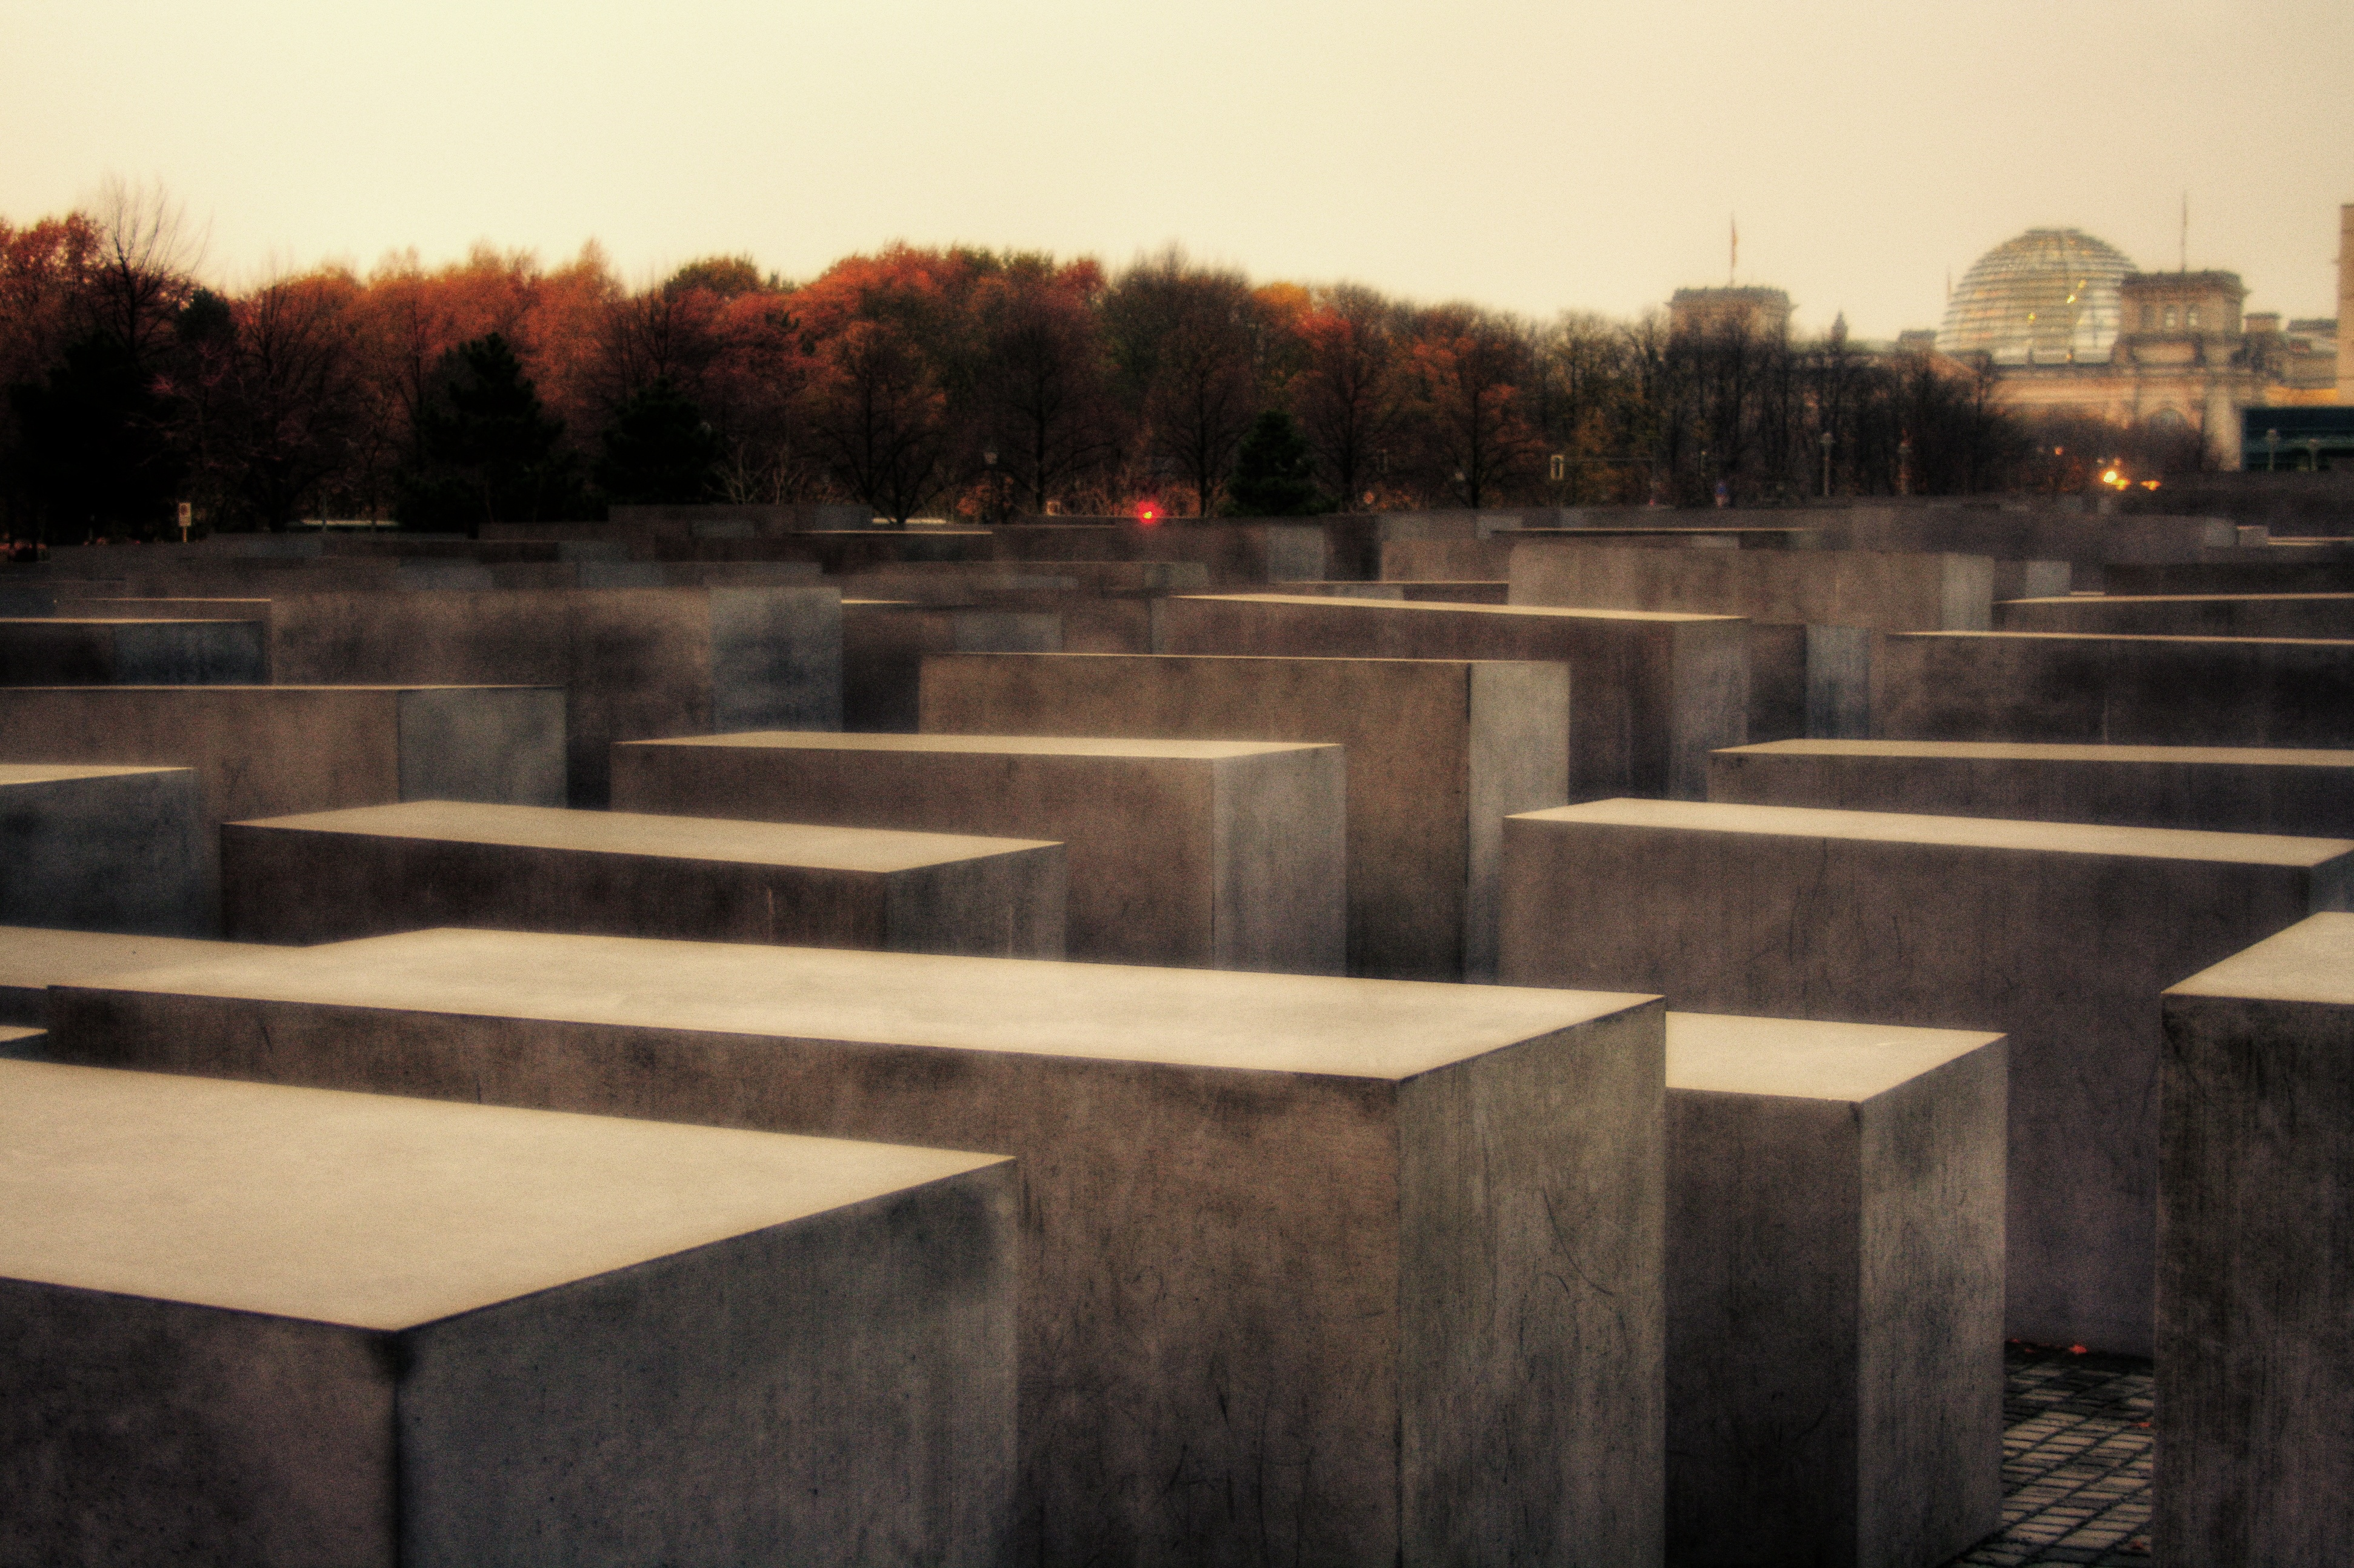 Image of the Memorial to Murdered Jews